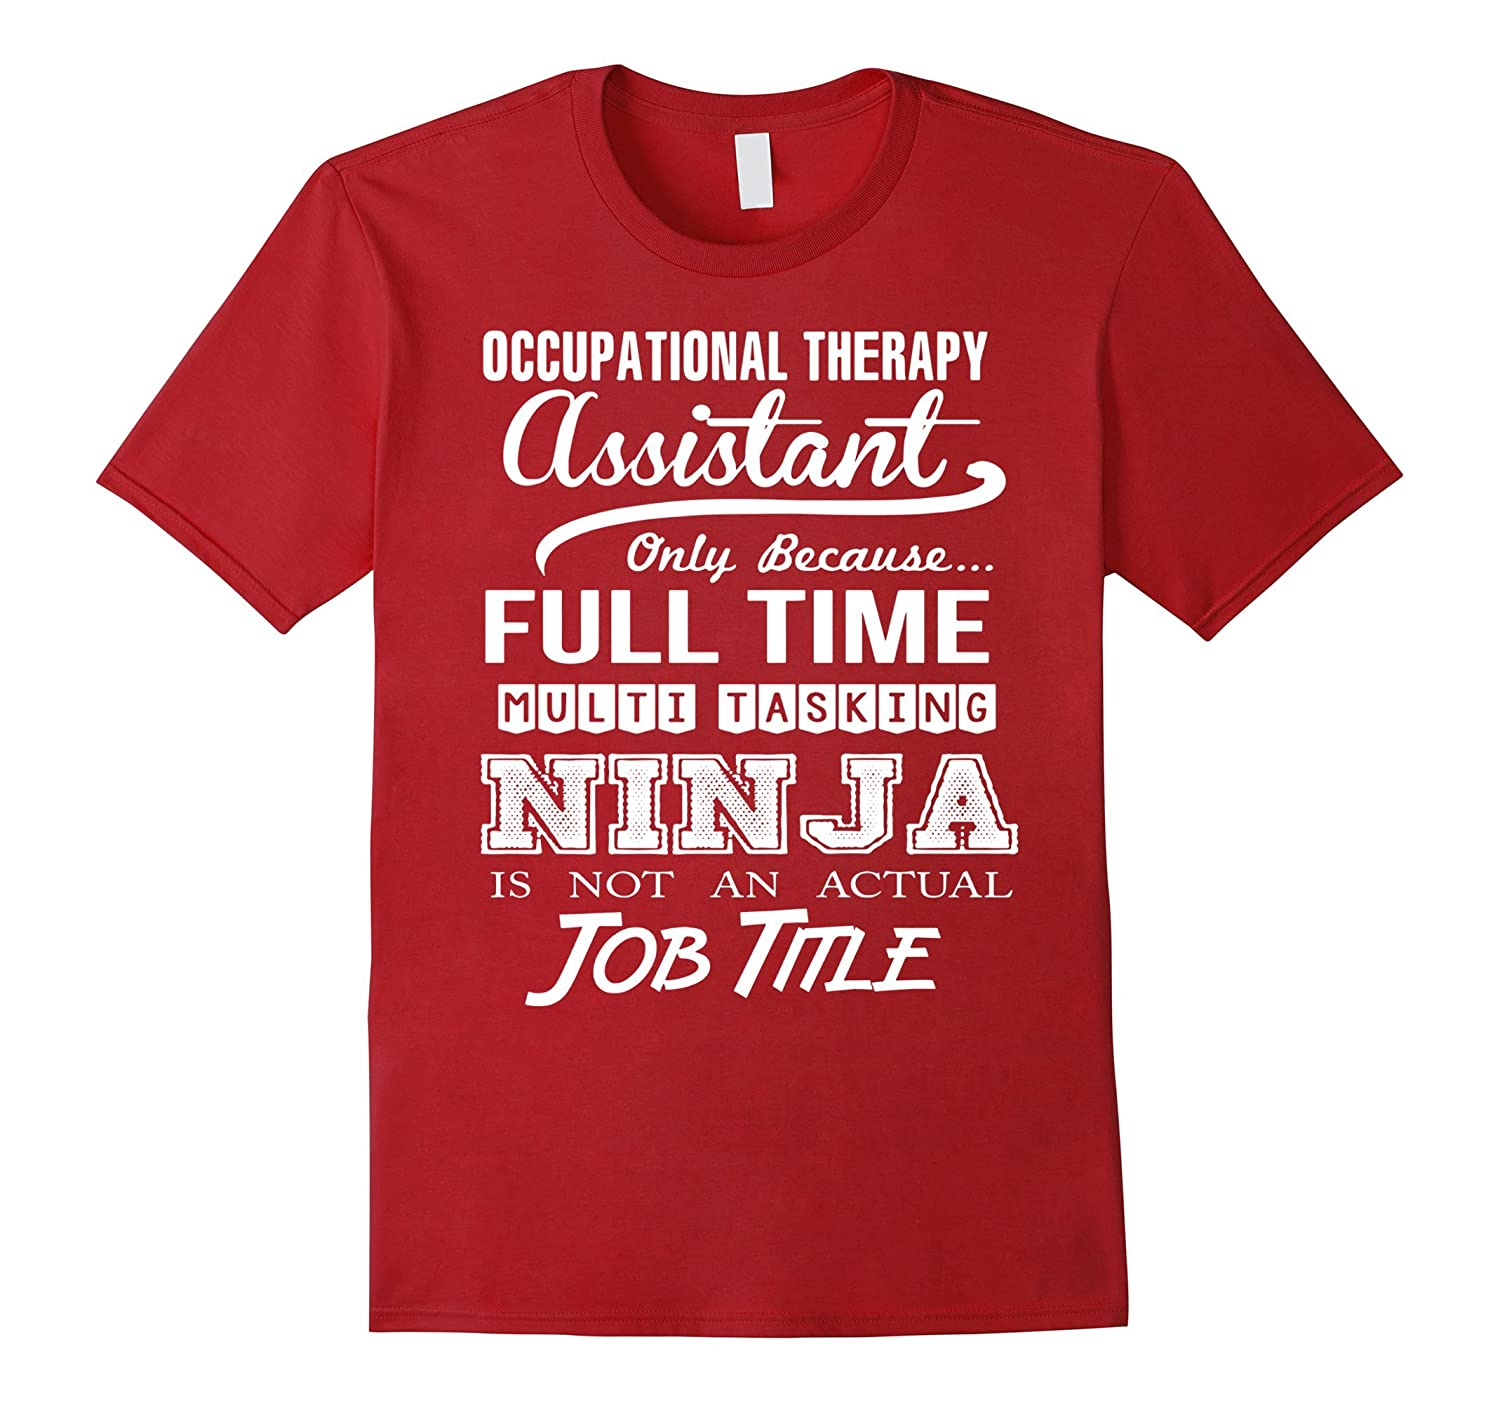 Occupational Therapy Assistant Job Title Shirt-TD